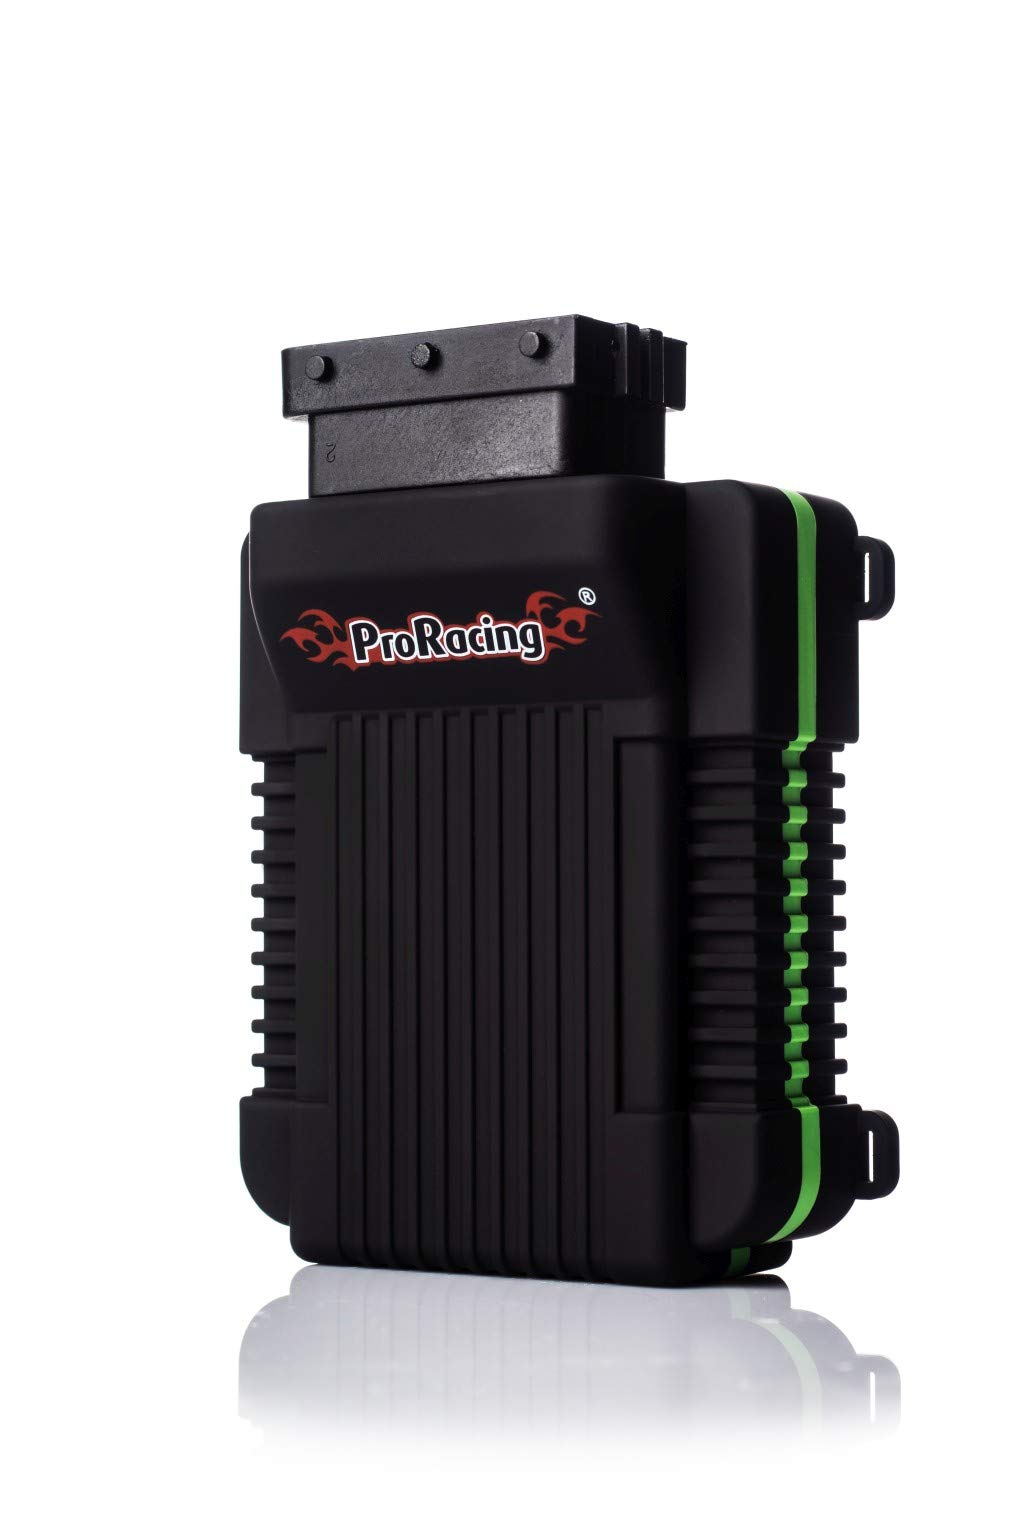 ProRacing X 33011 Chip Tuning UNICATE für B.M.W 525d F07 F10 F11 (3.0d) 150 KW / 204 PS / 450 NM (2010+) von ProRacing X